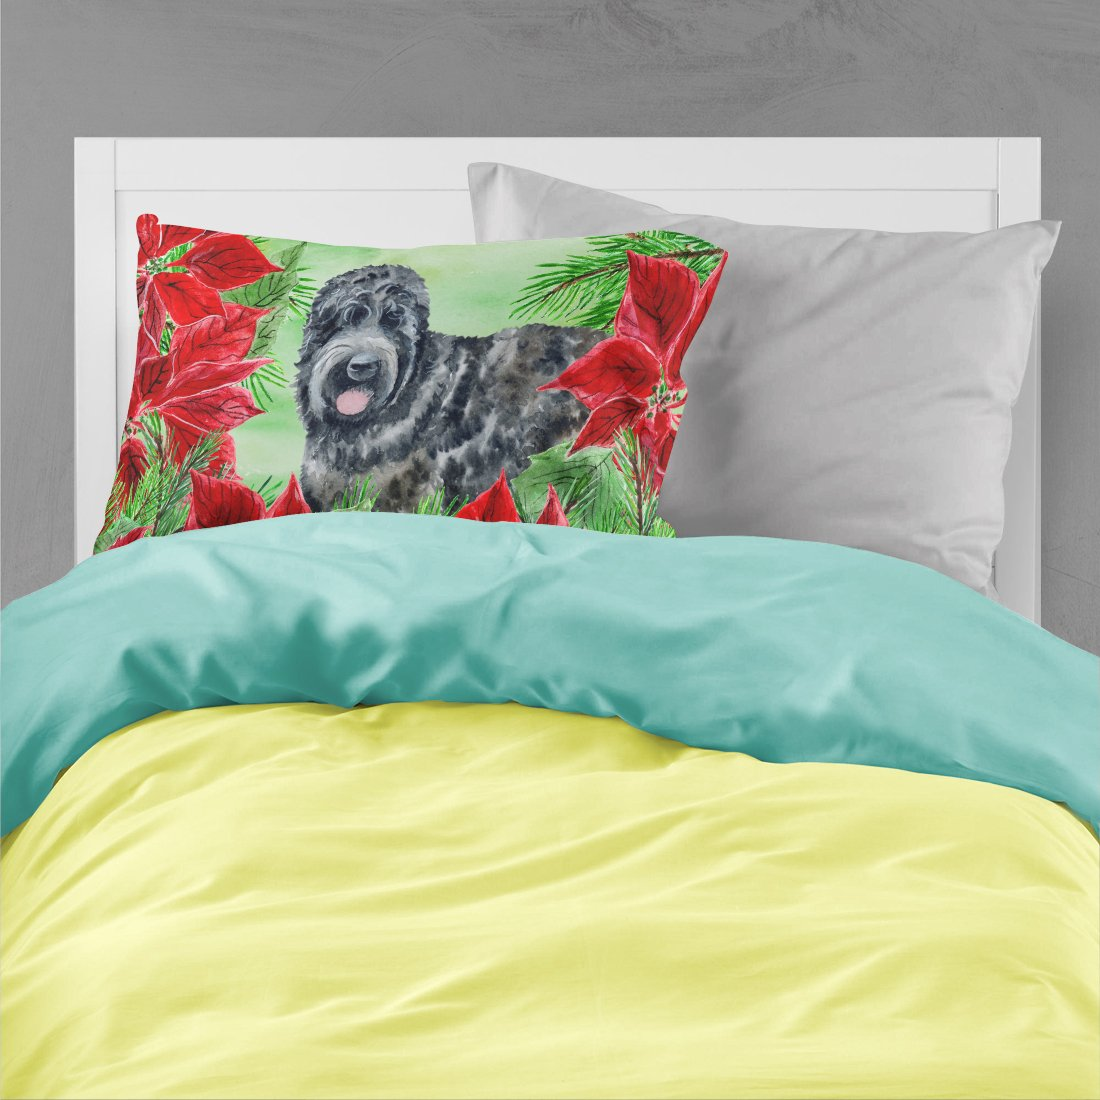 Black Russian Terrier Poinsettas Fabric Standard Pillowcase CK1325PILLOWCASE by Caroline's Treasures